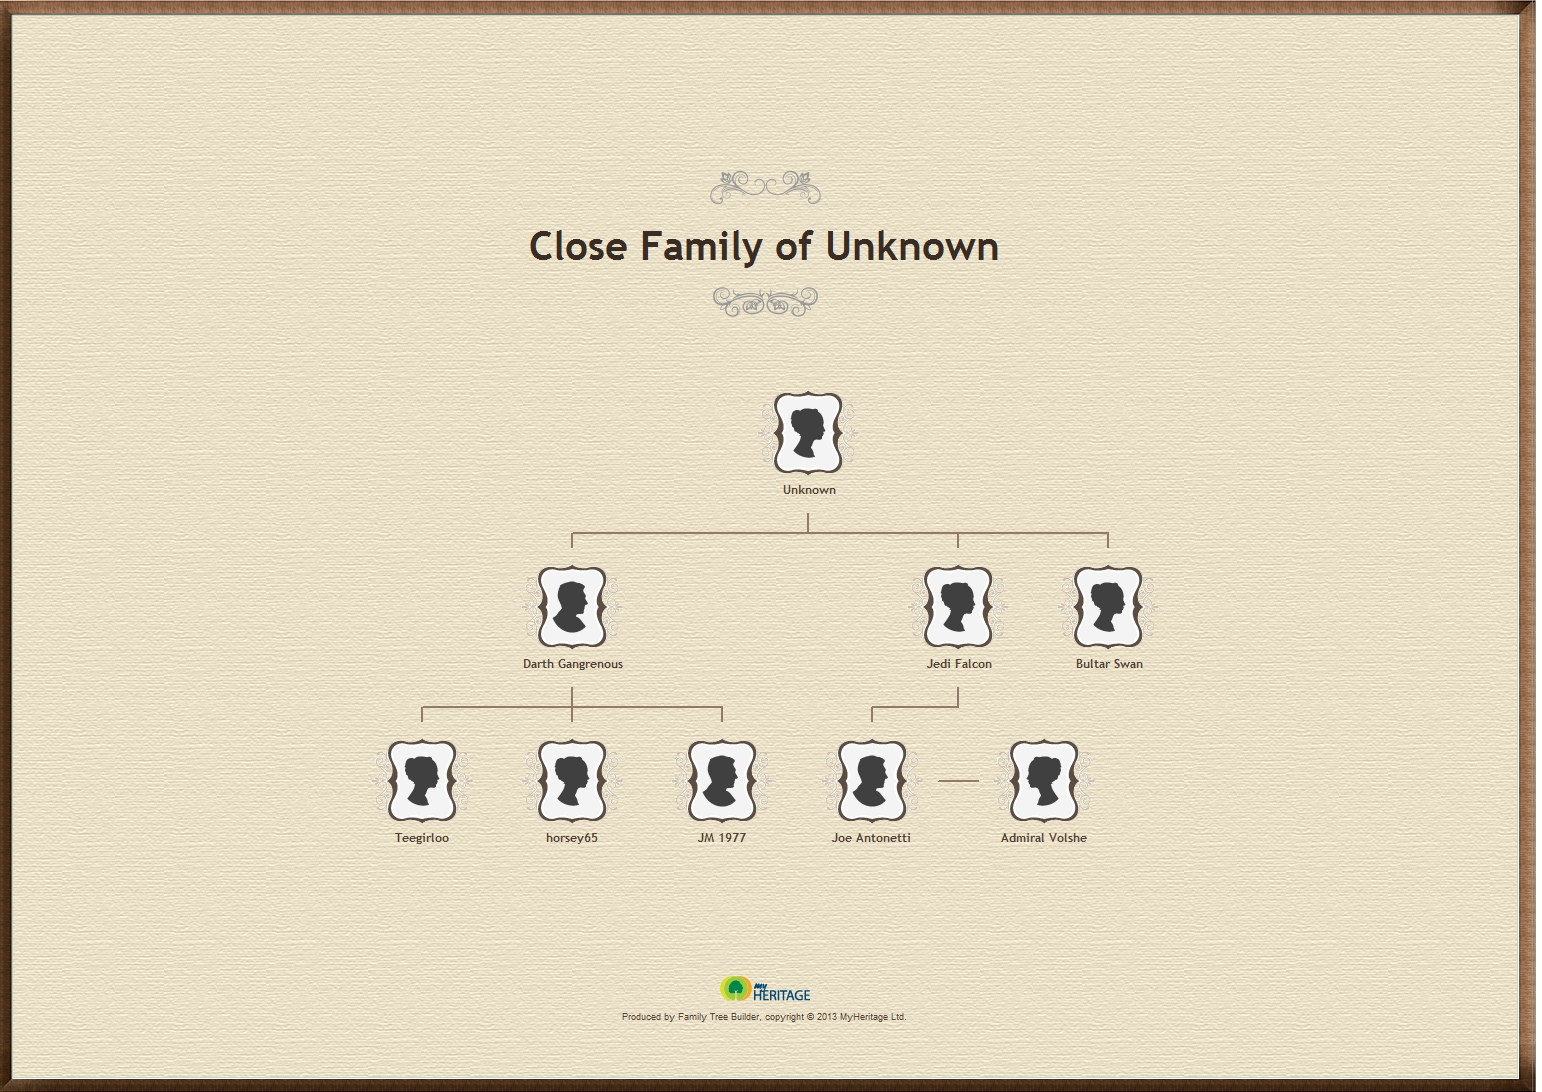 Close Family of Unknown